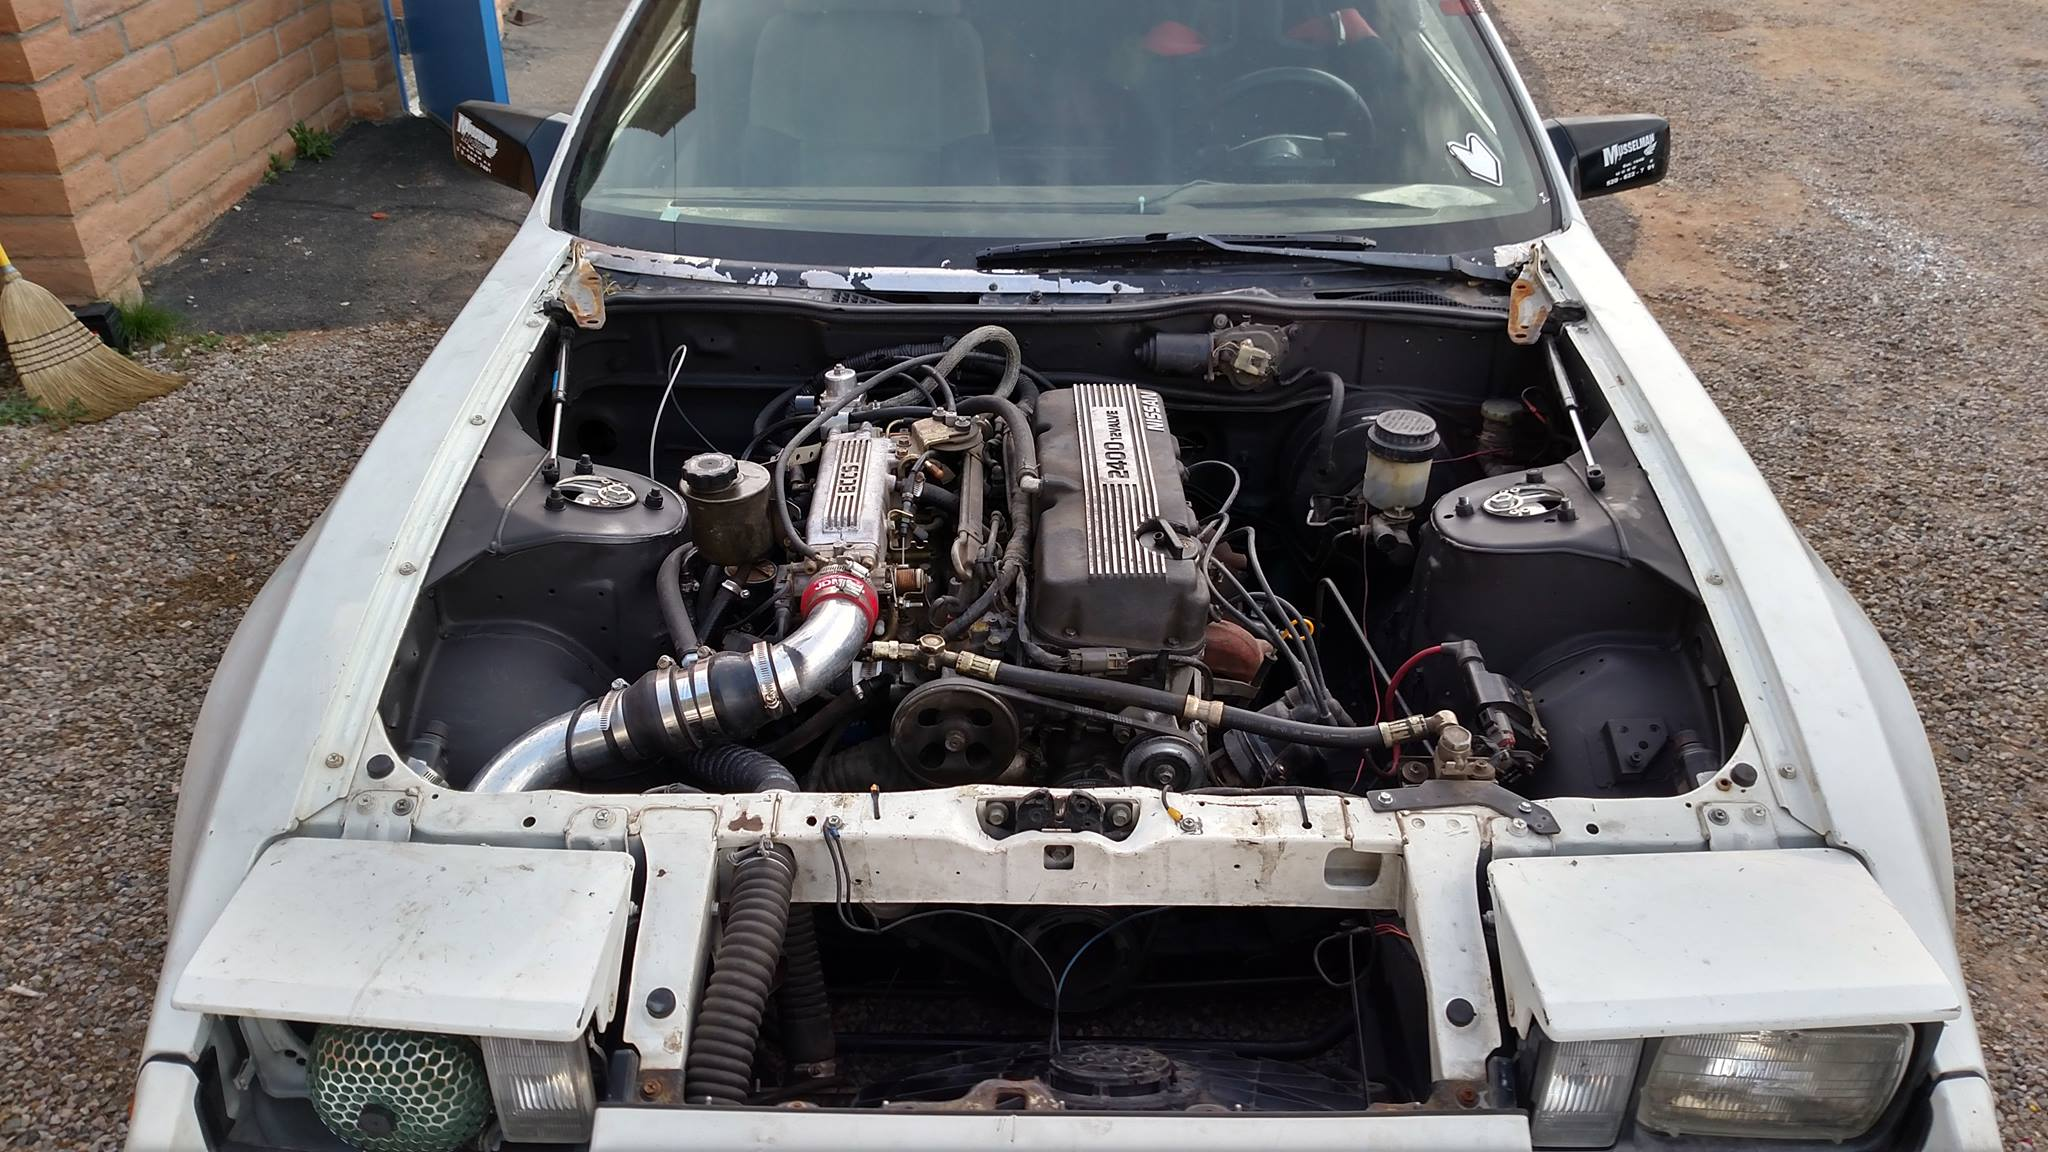 ZBUM's Z31 300ZX Engine Swap Page